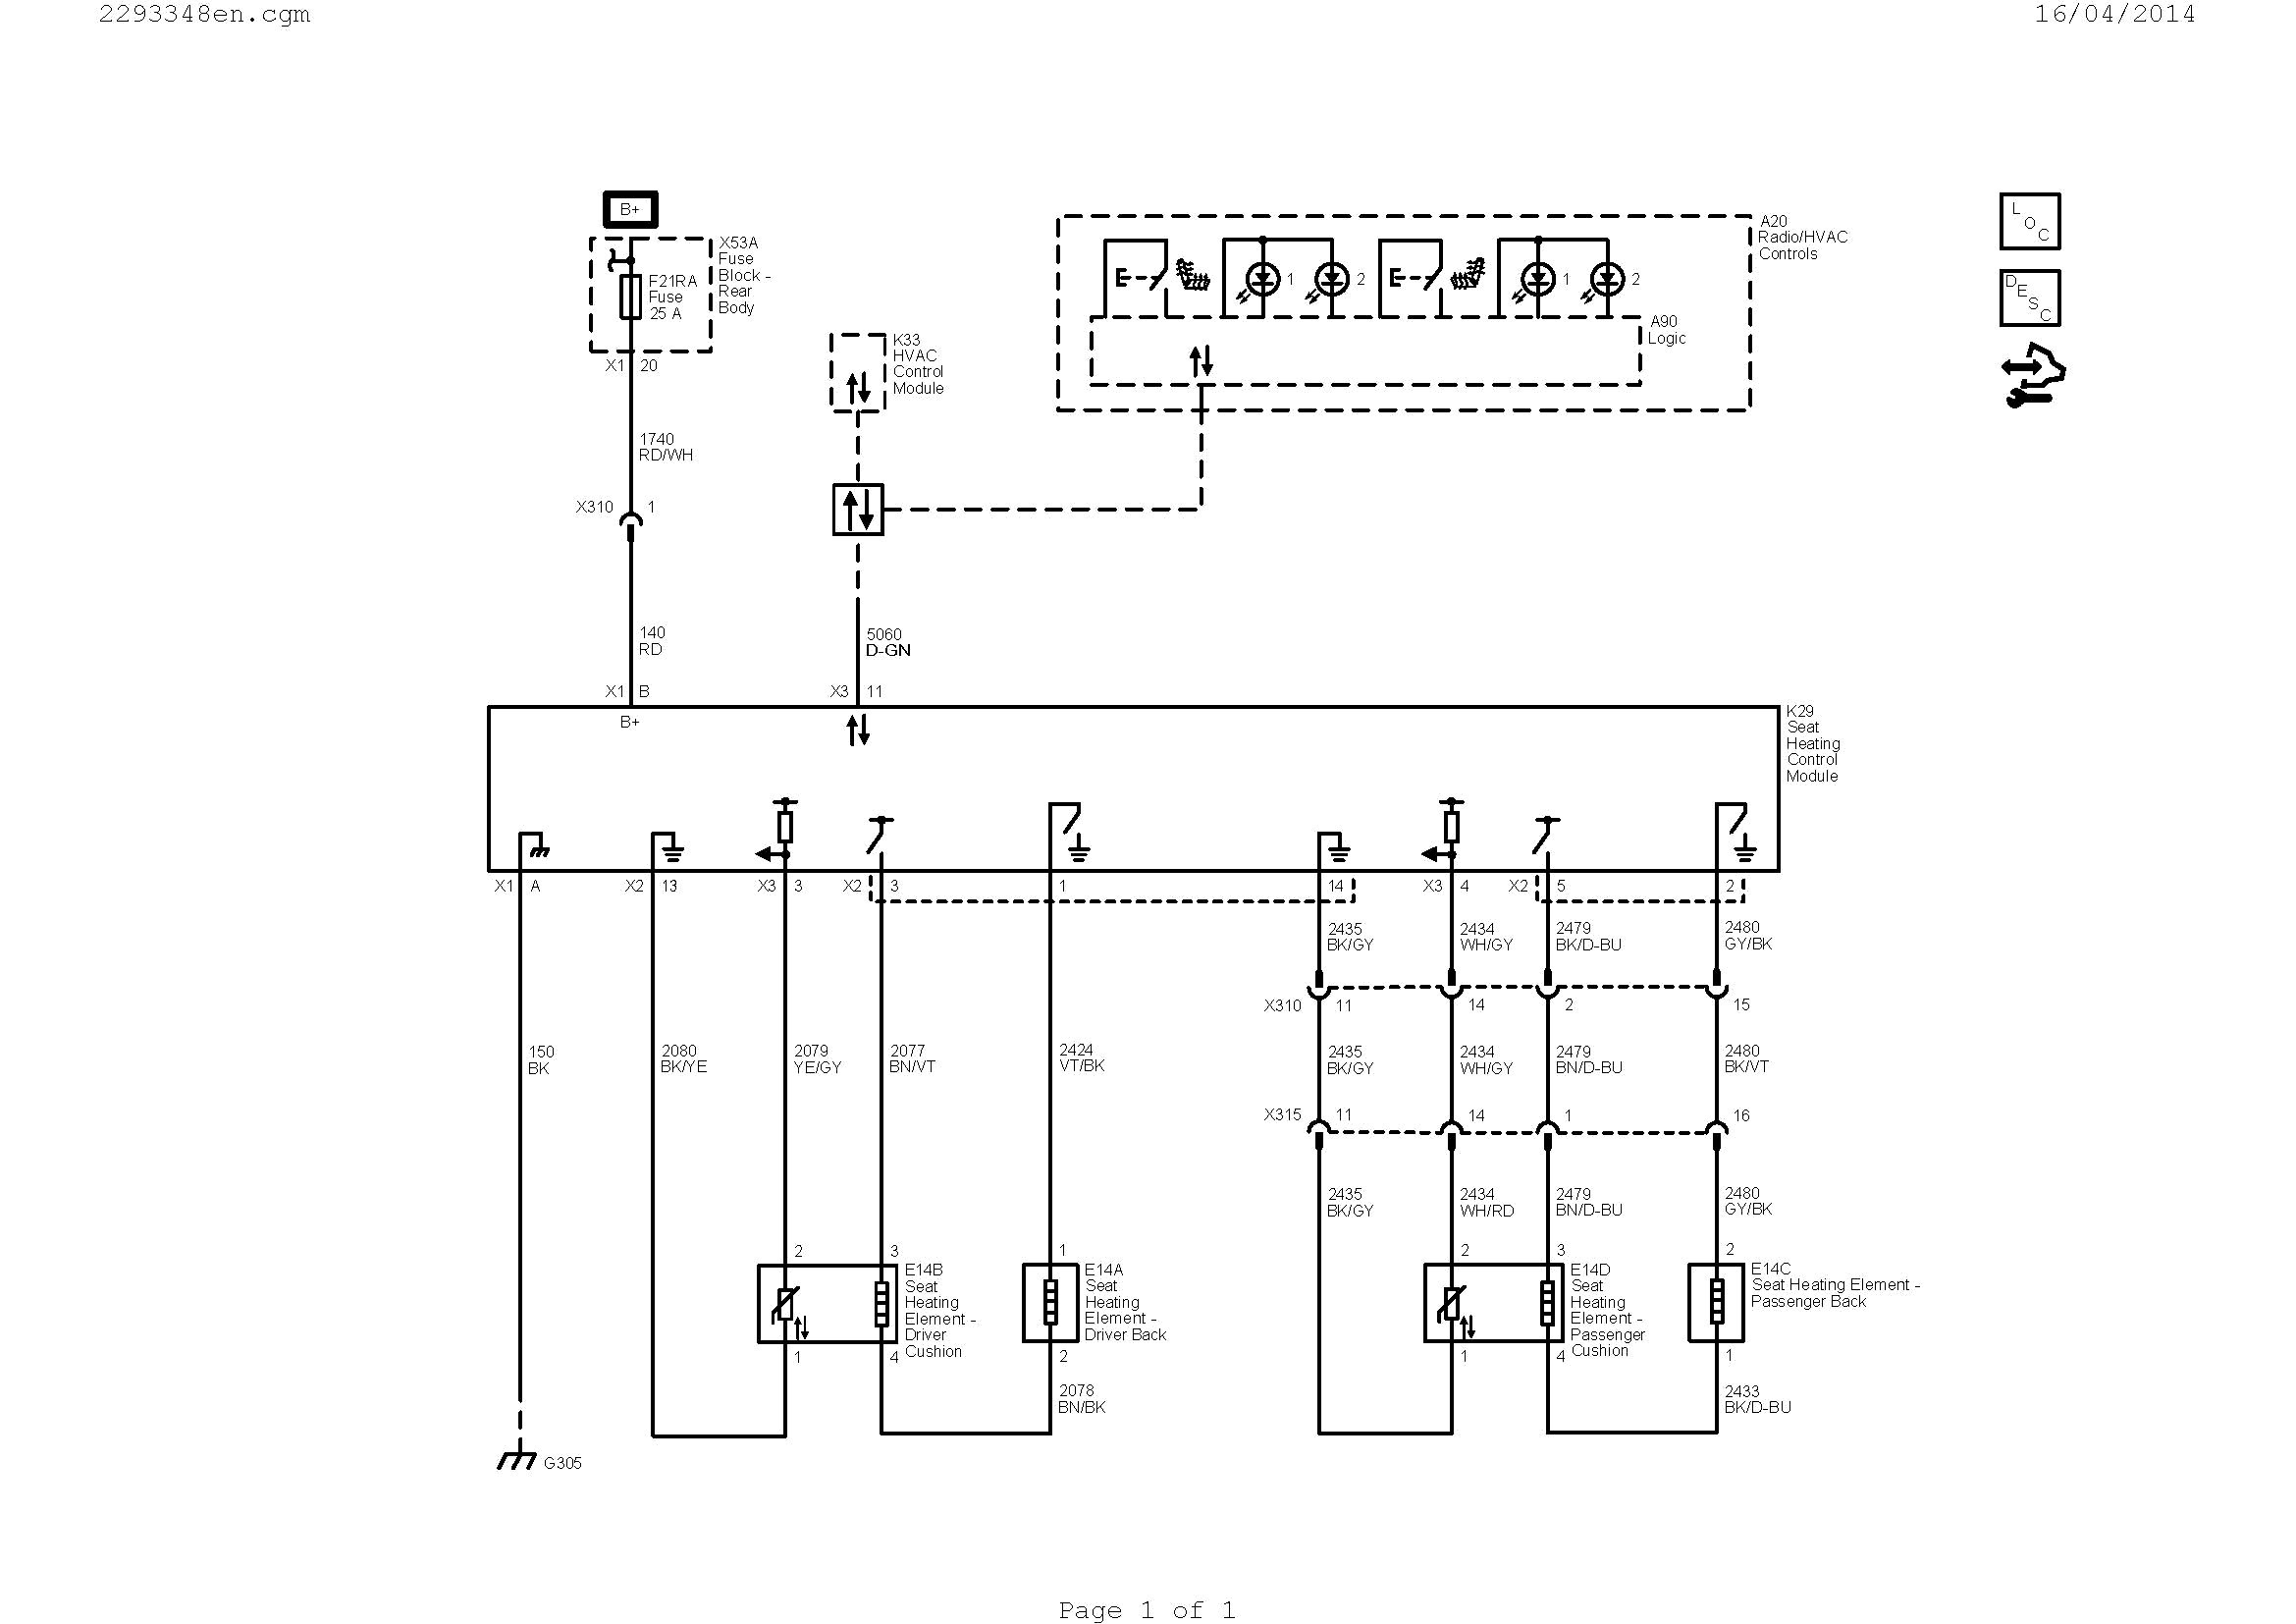 fbp 1 40x wiring diagram Download-Wiring Diagram for Work Light Best Fbp 1 40x Wiring Diagram Pics 8-p